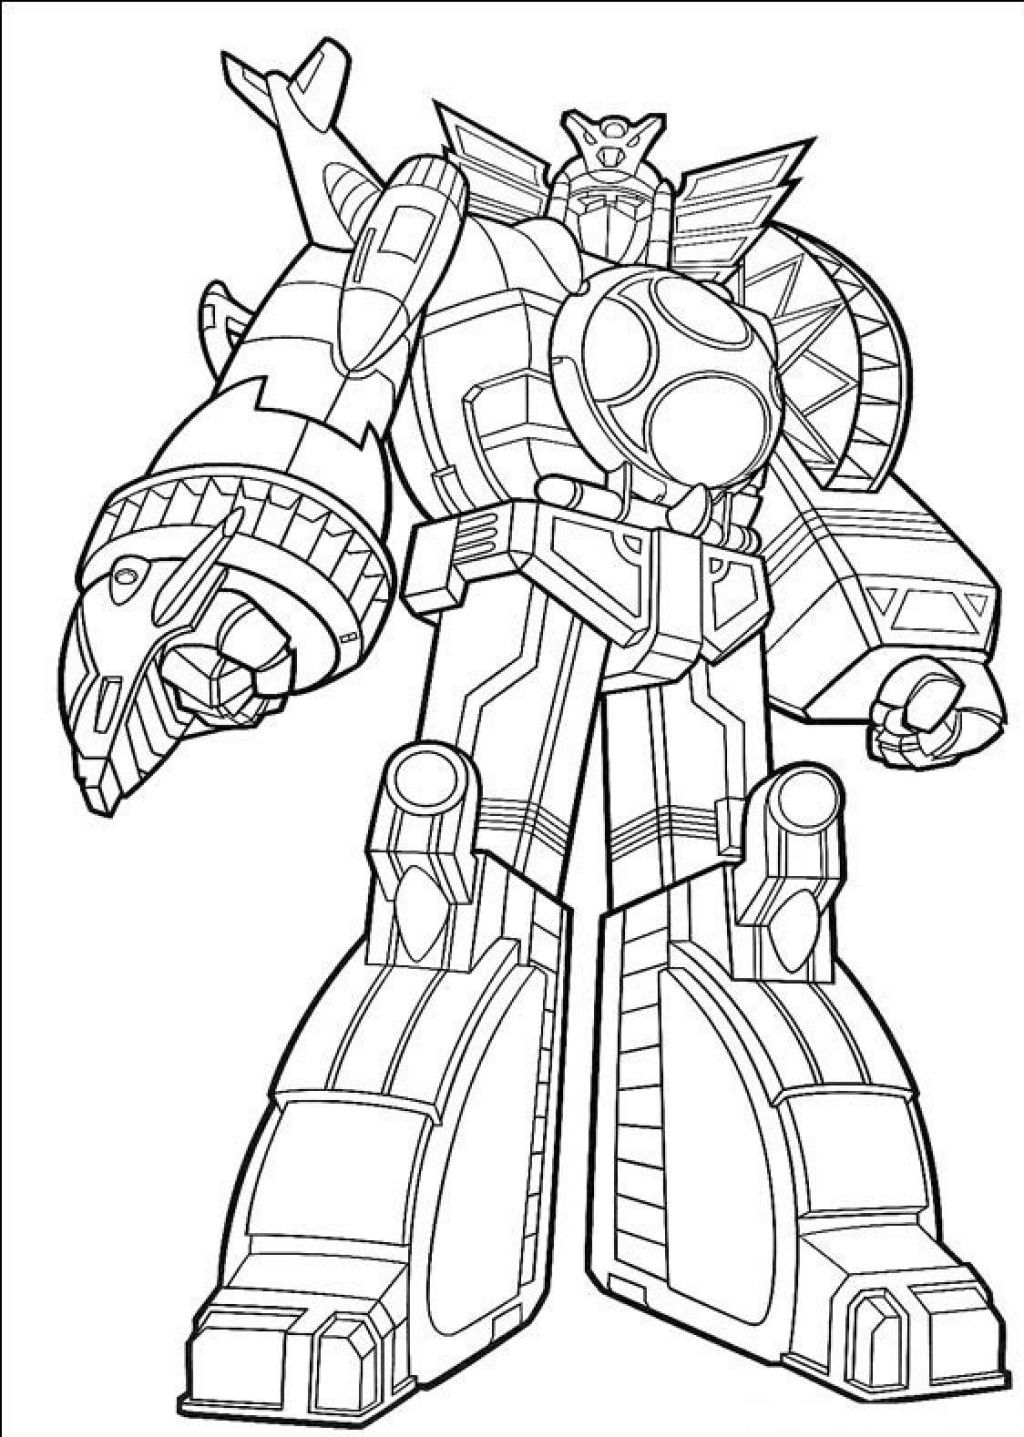 Pin By Marzena Dziubak On Szablony Power Rangers Coloring Pages Transformers Coloring Pages Animal Coloring Pages